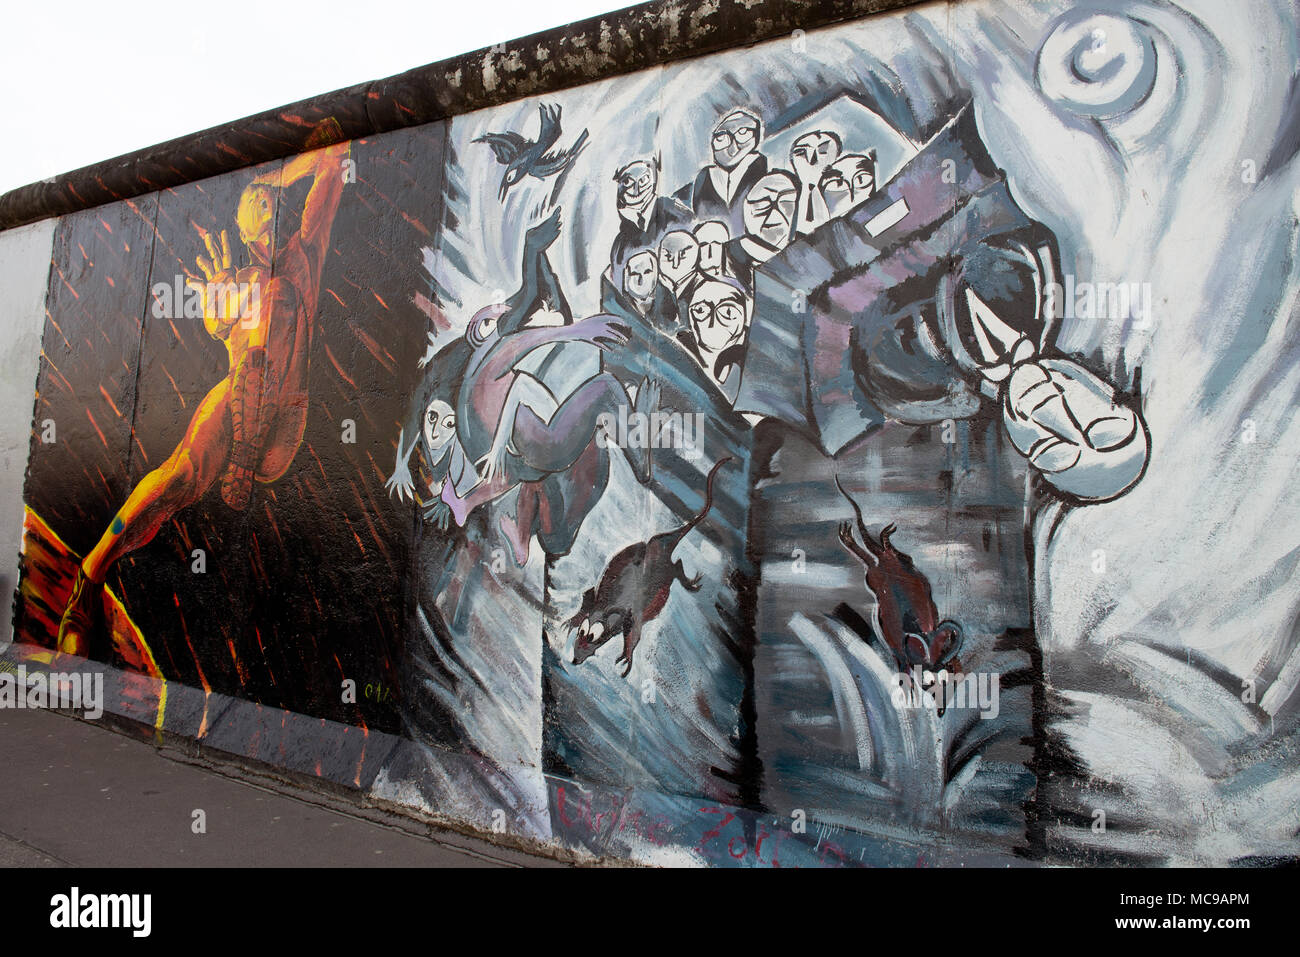 East Side Gallery. The largest remaining section of the Berlin Wall, also one of the world's largest open-air galleries. Berlin, Germany - Stock Image